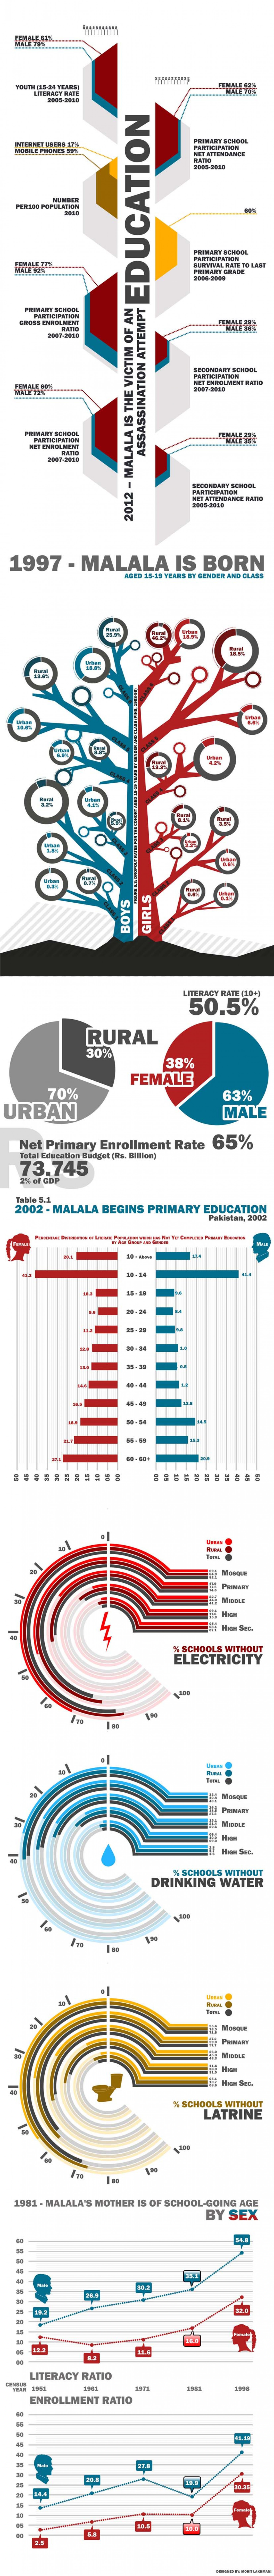 Malala is a victim of an assassination attempt  Infographic